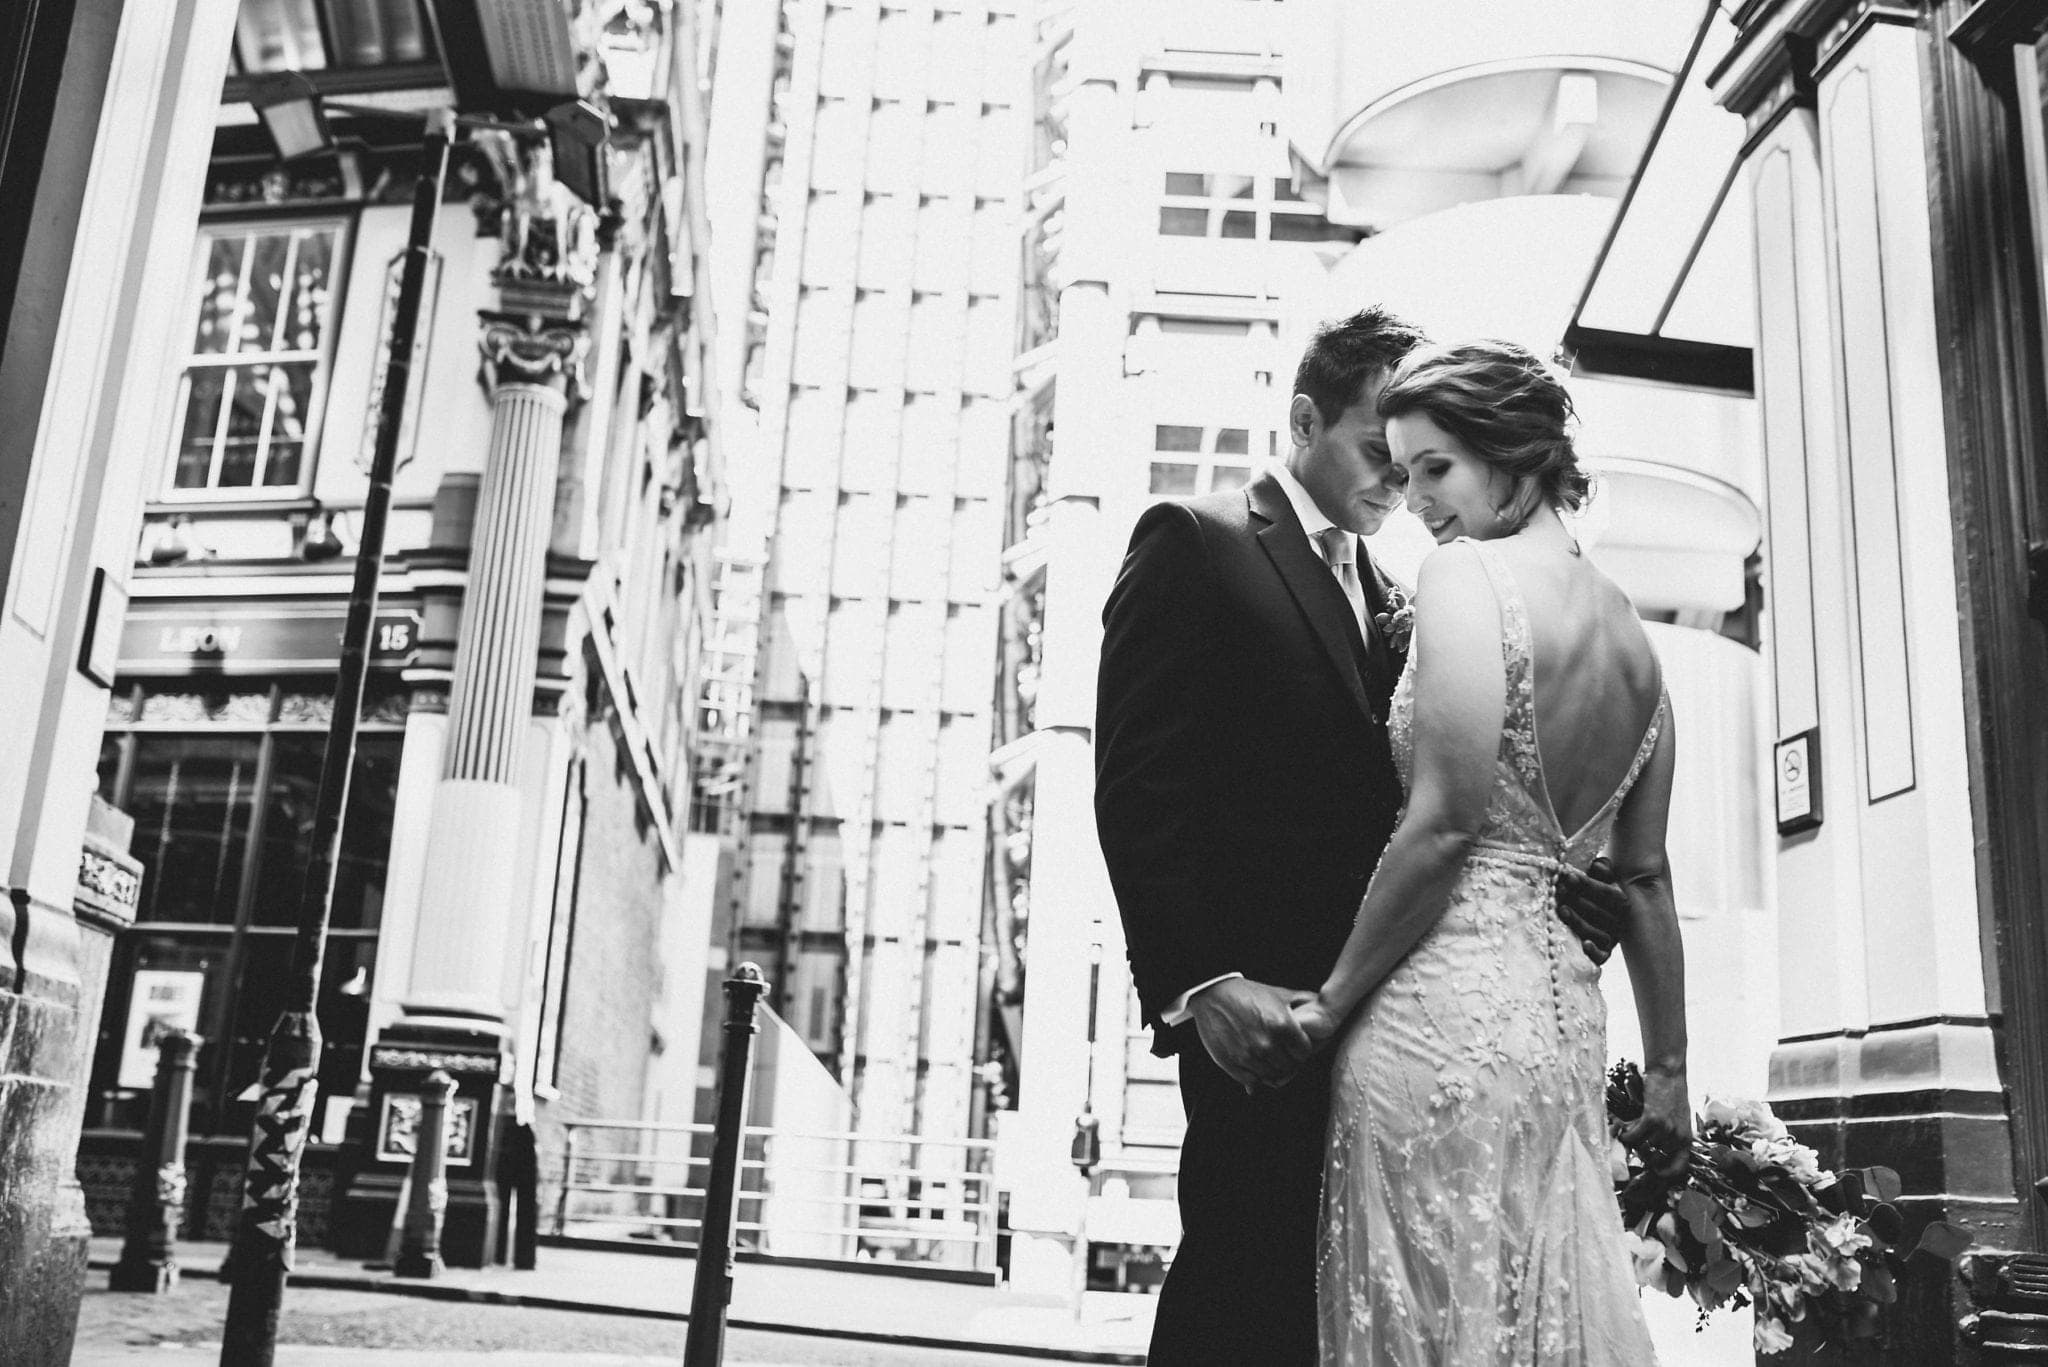 Black and white portrait of bride and groom on London street